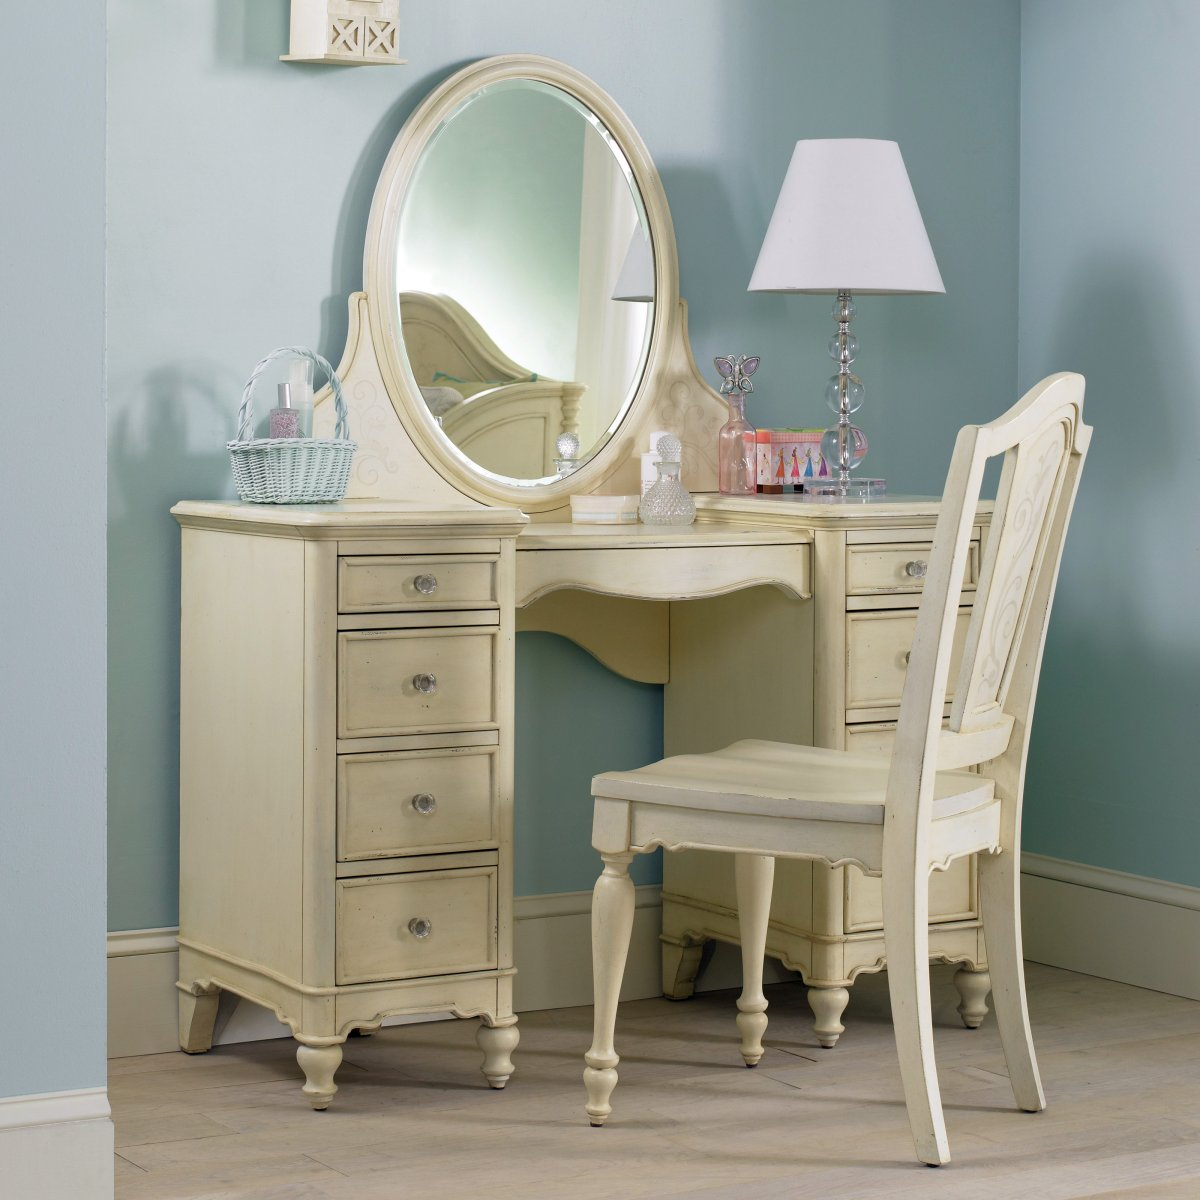 Bedroom vanity desk home furniture design - Bedroom desk chair ...